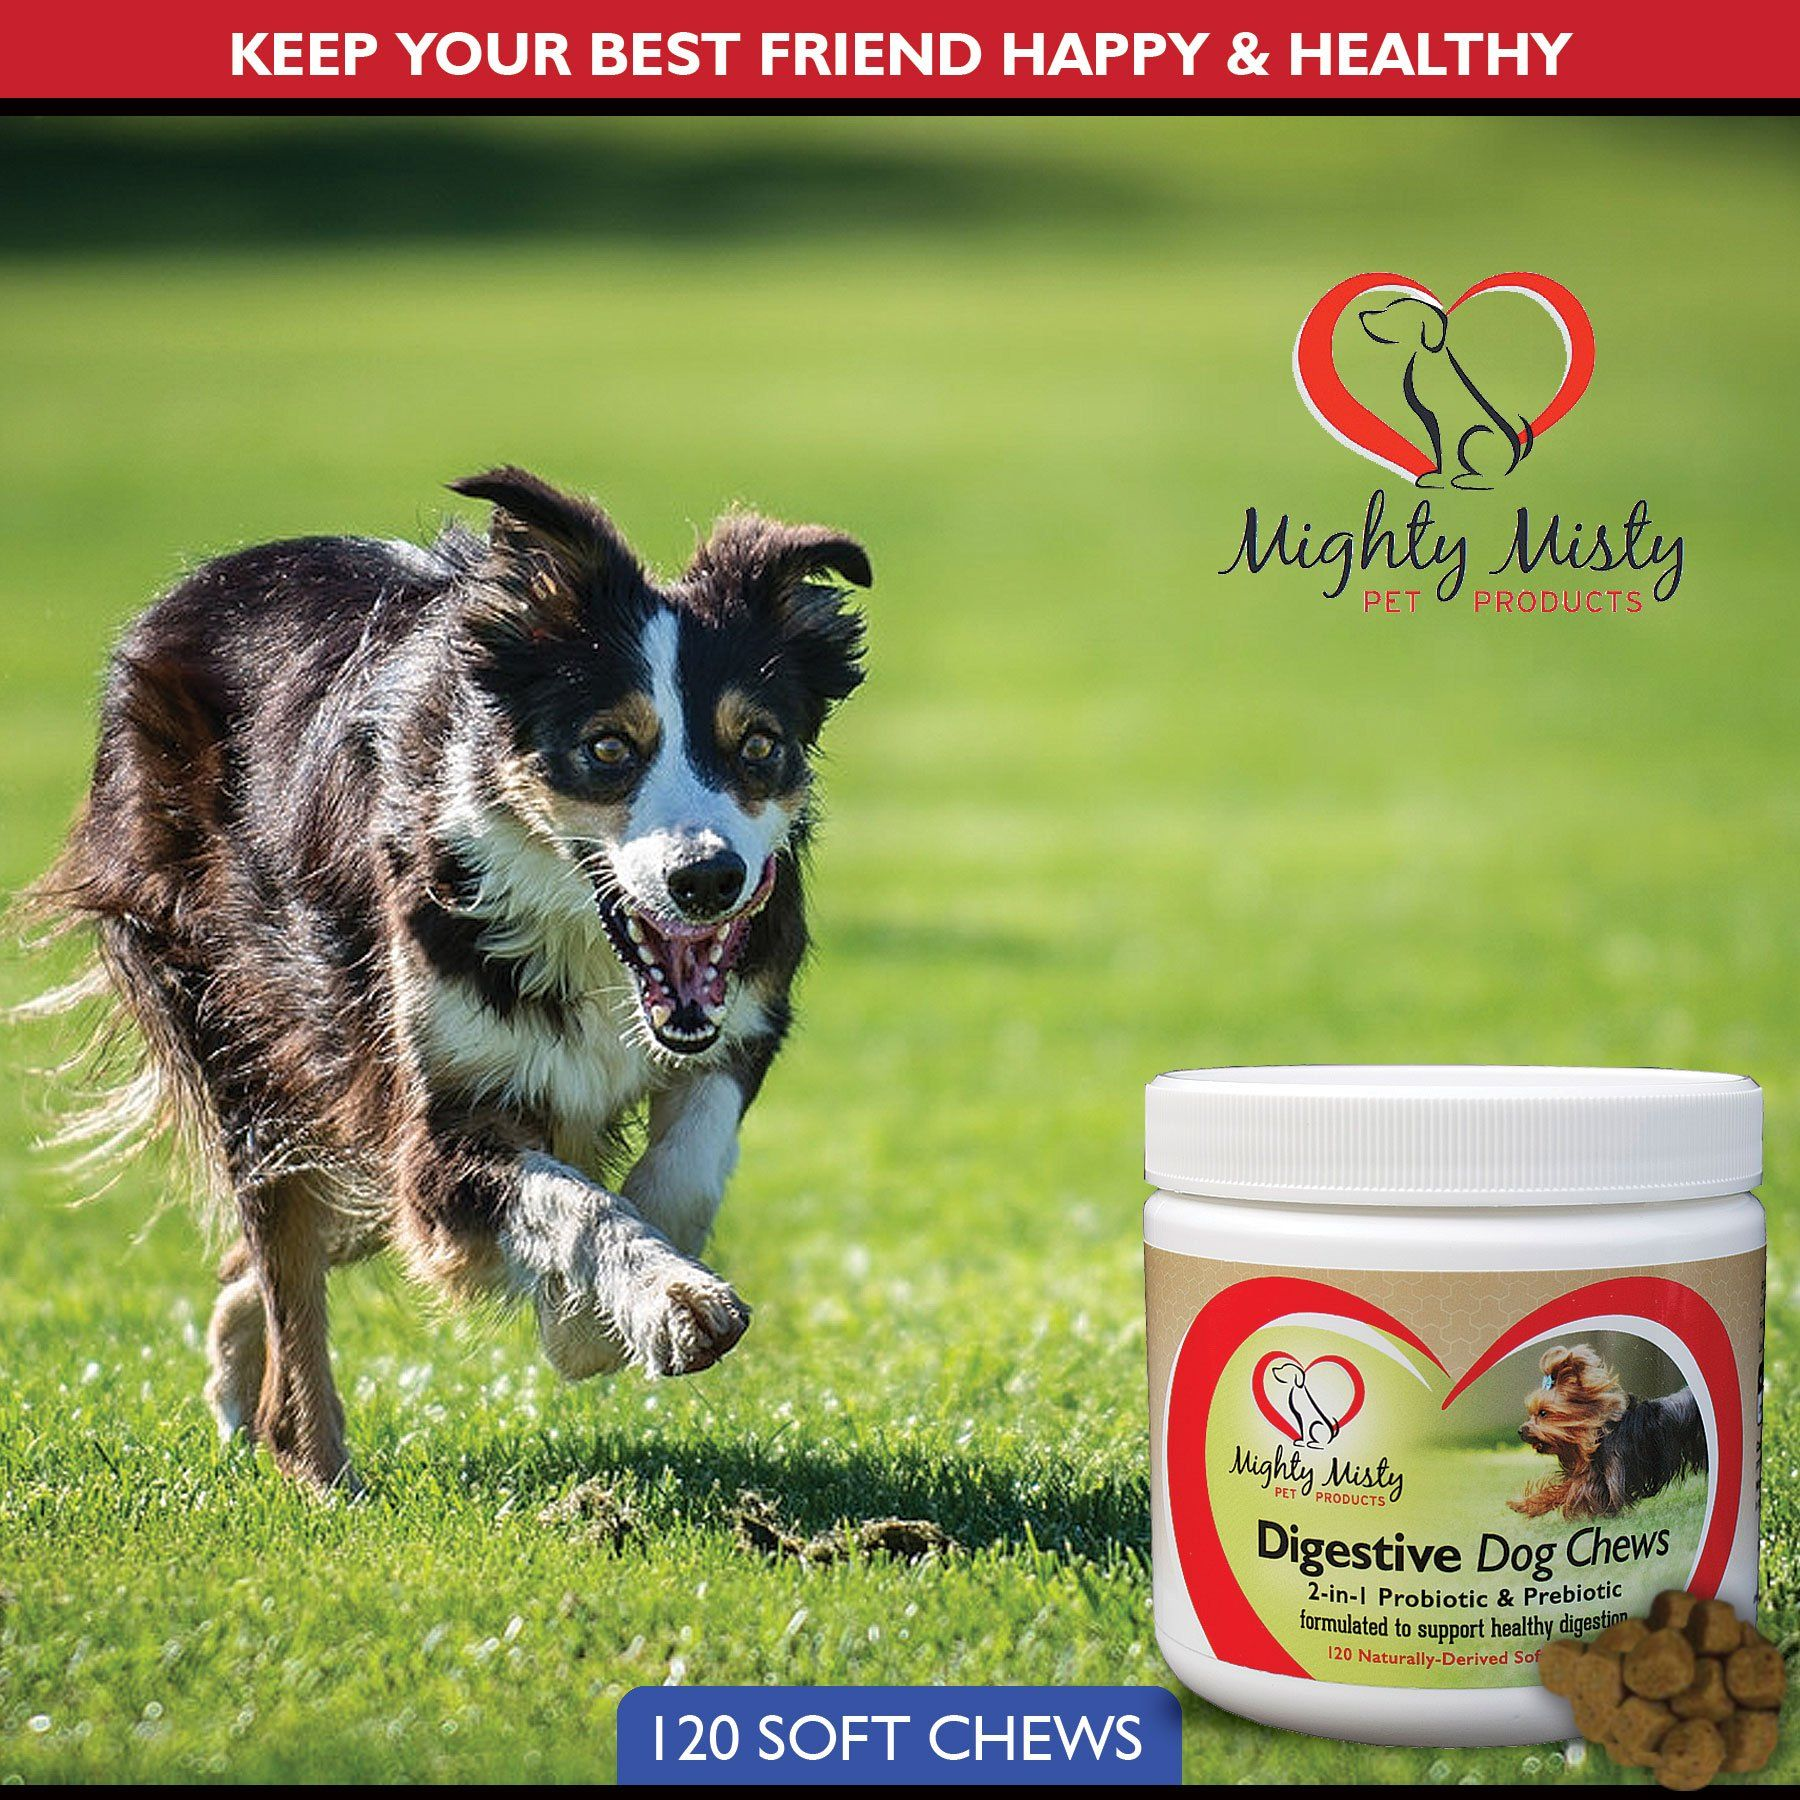 2In1 Dog Probiotic And Prebiotic Soft Chews By Mighty